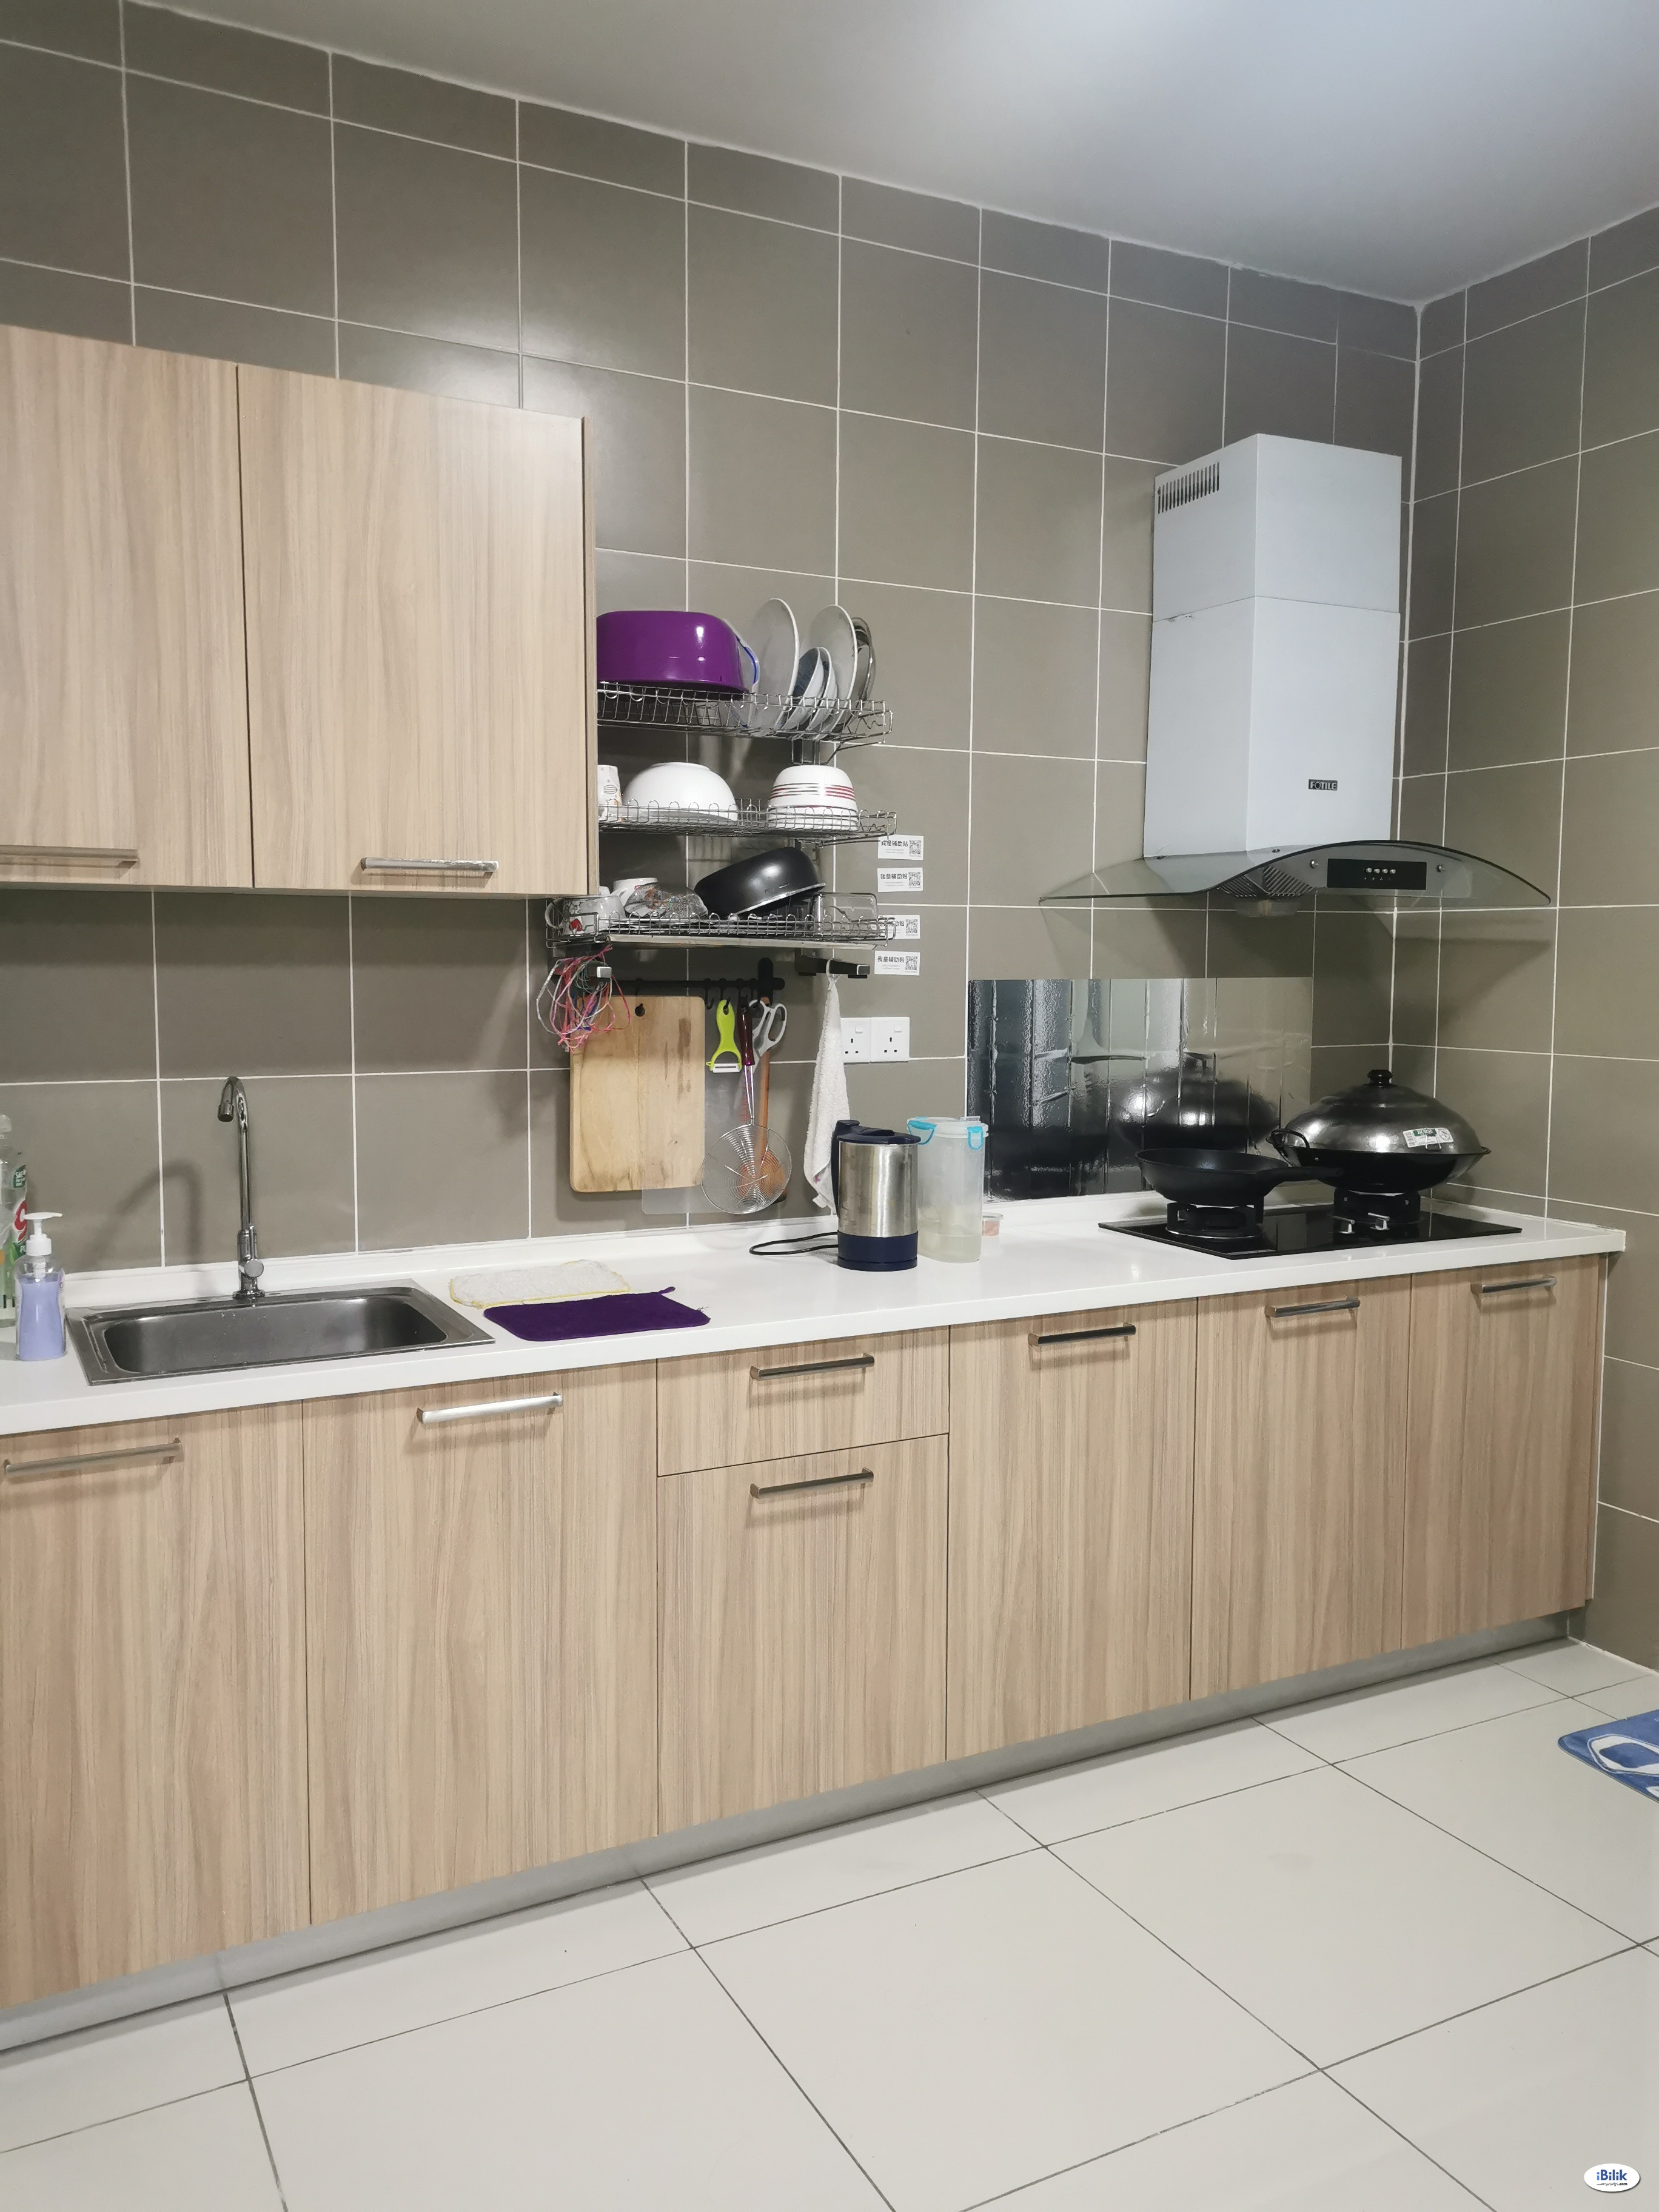 Middle Room at Aurora Residence, Puchong